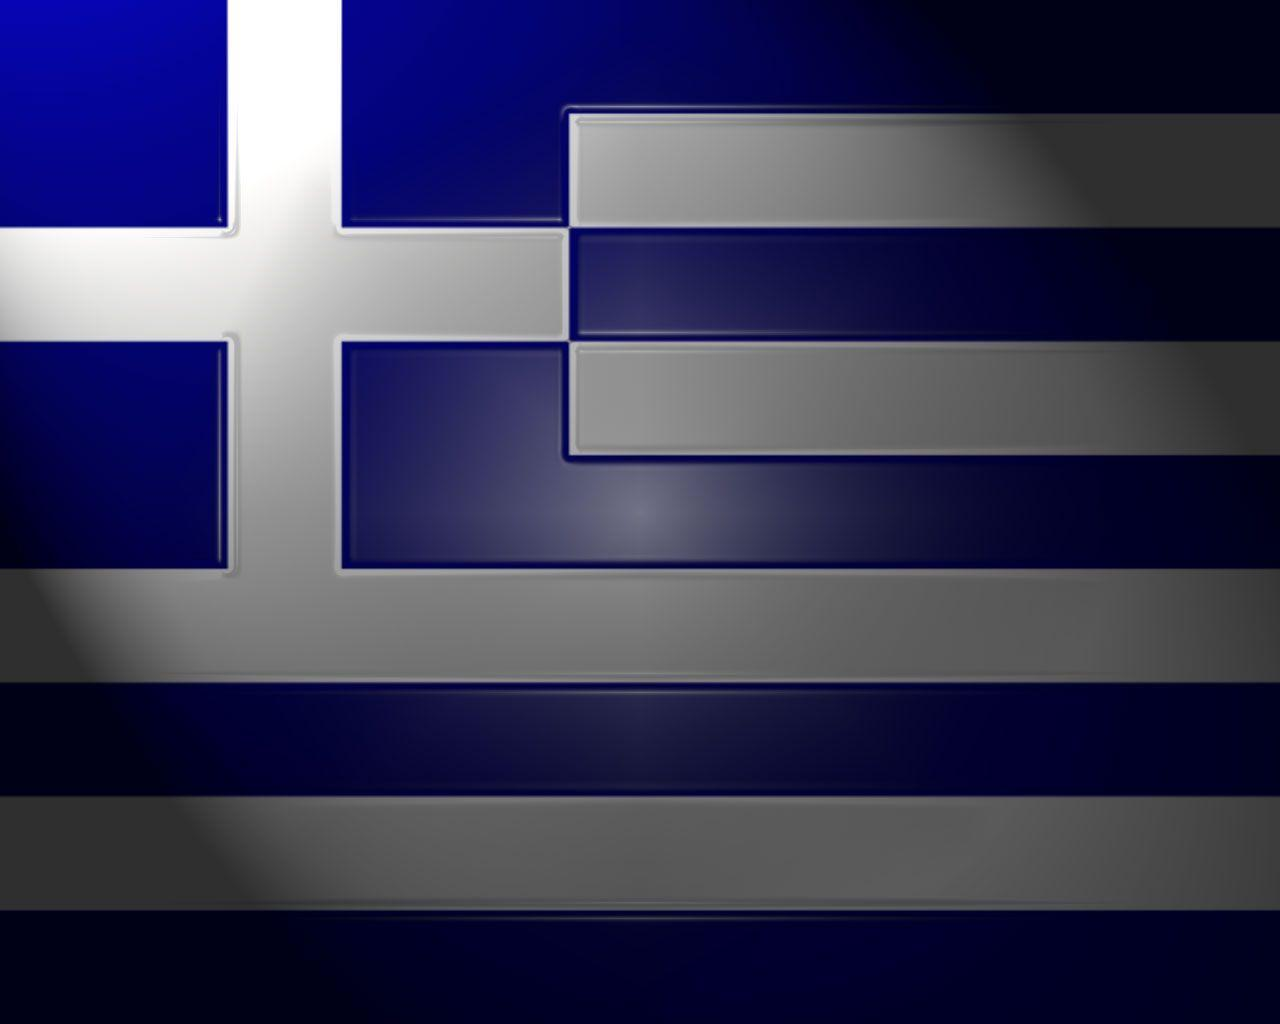 Greece Flag HD Wallpaper, Backgrounds Image